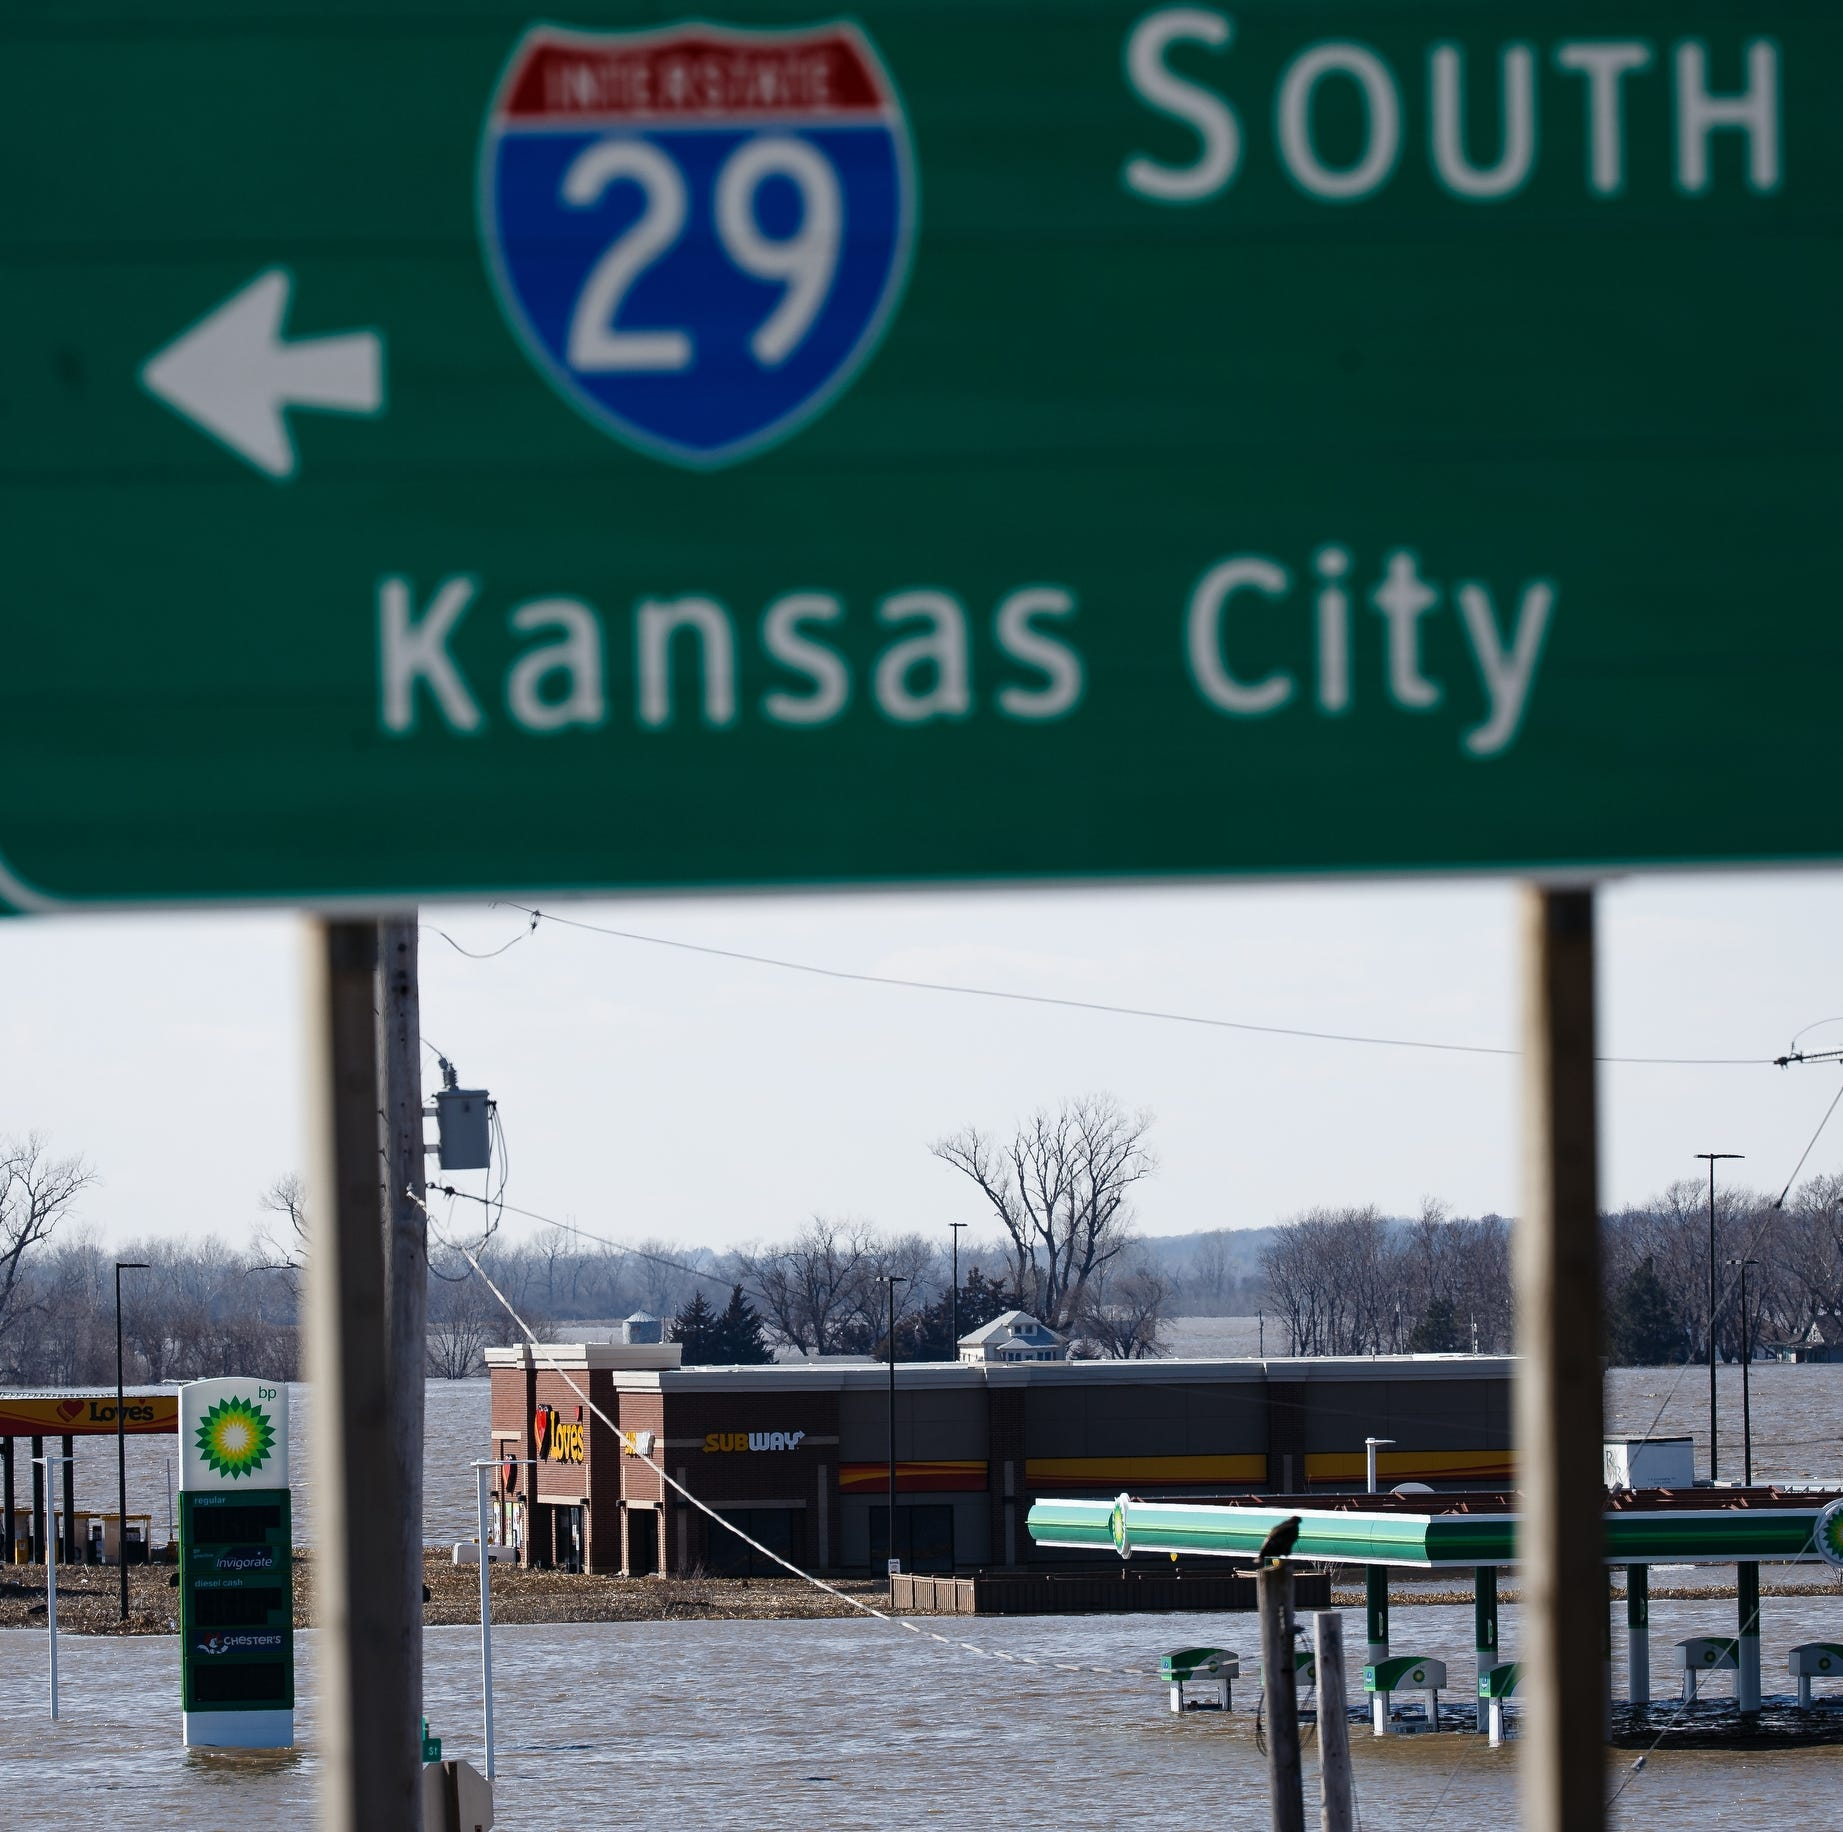 This is where Iowa roads and railways are closed due to flooding